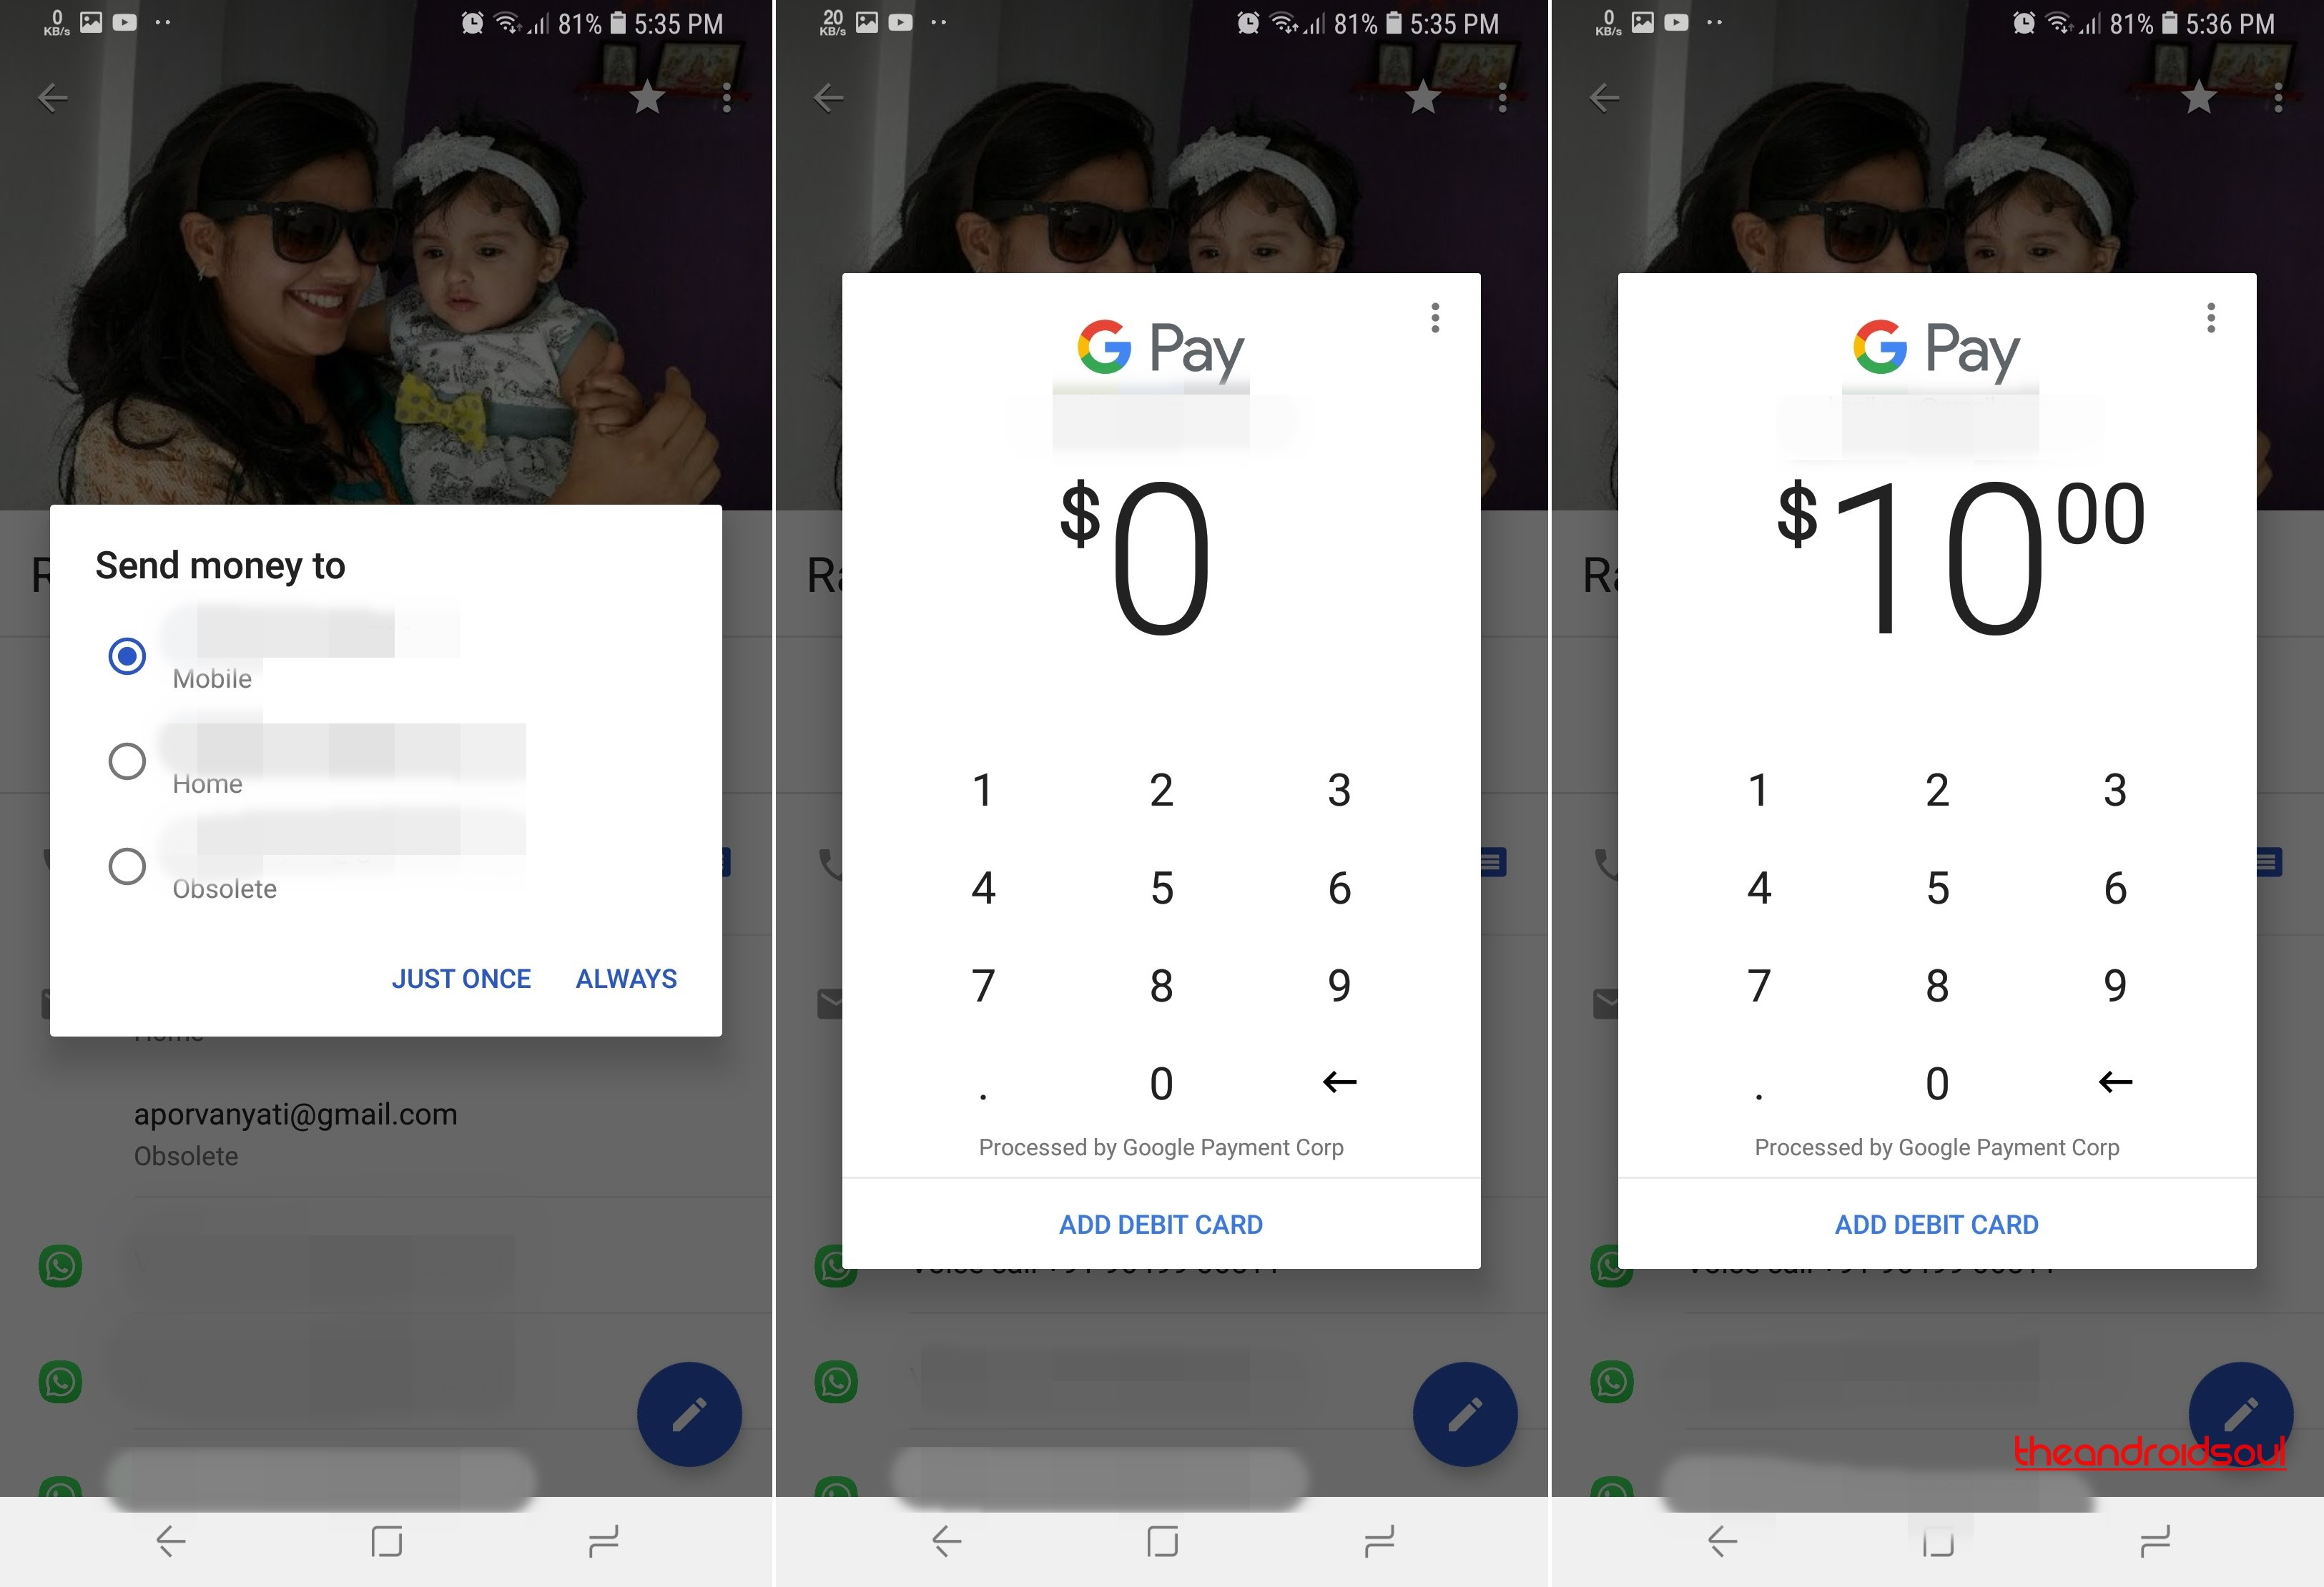 Google is testing payments system in India to allow sending money